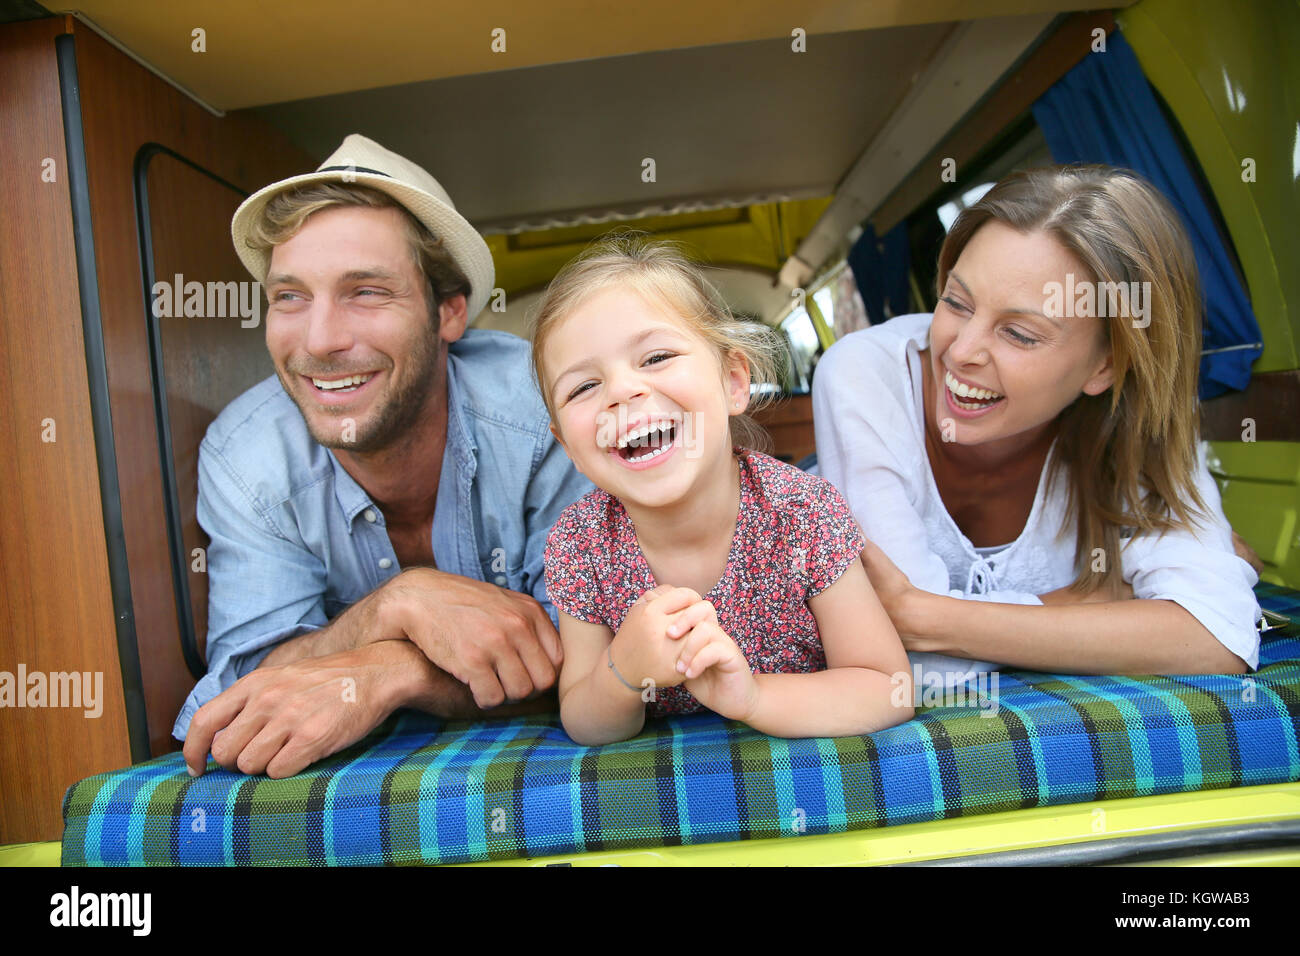 Portrait of cheerful family having fun in camper - Stock Image